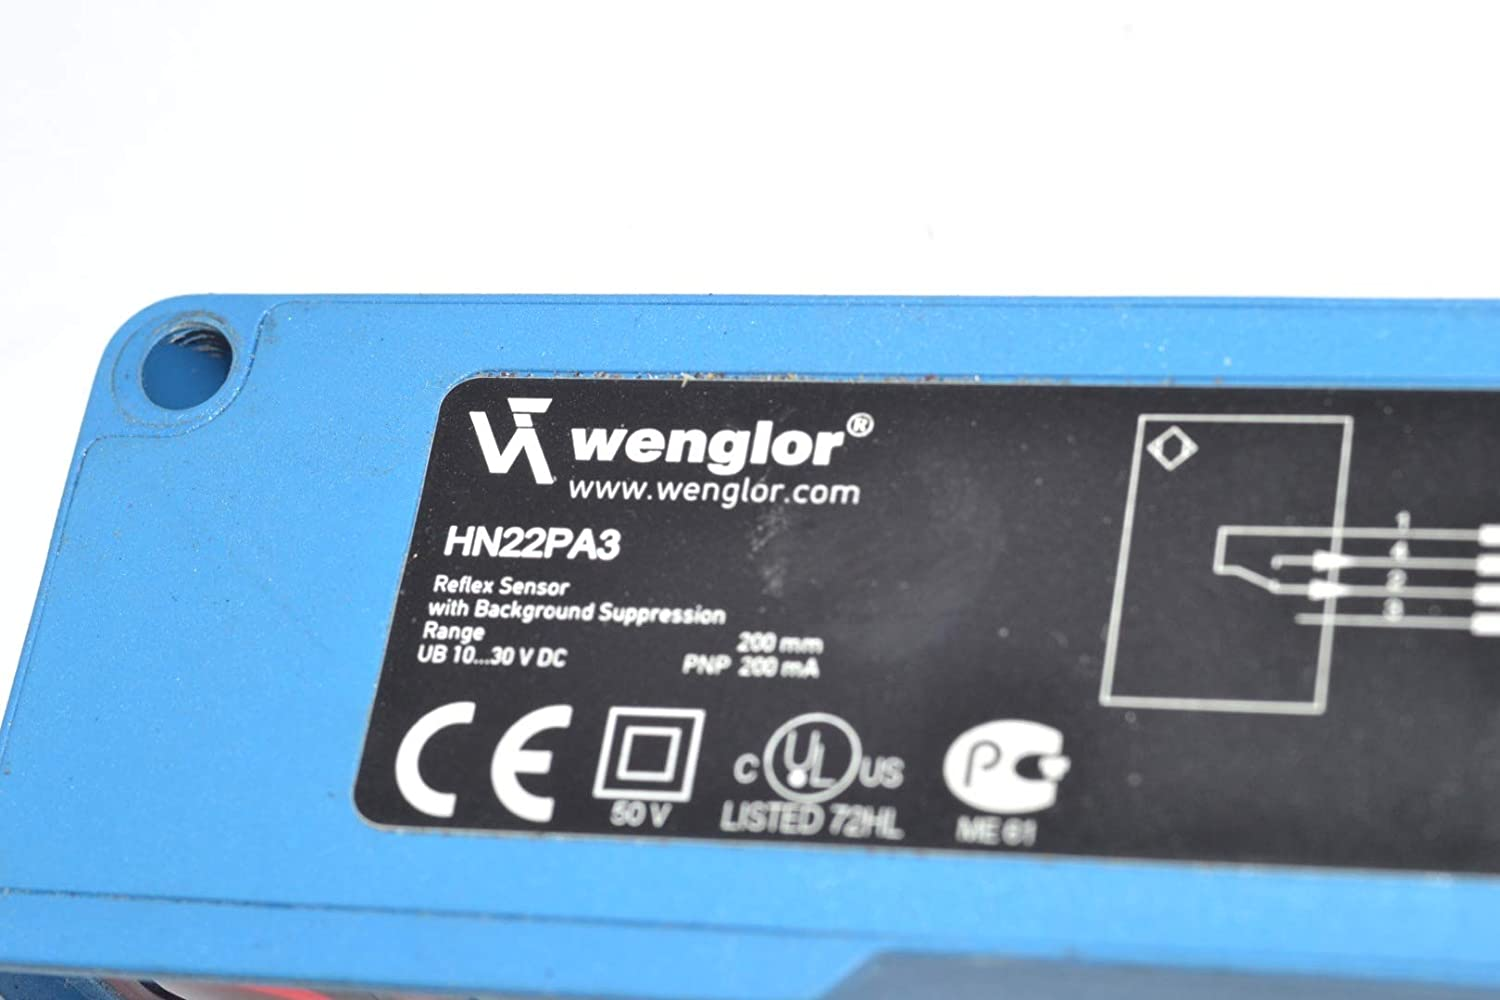 WENGLOR HN22PA3 Reflex Sensor, with Background Suppression: Amazon.com: Industrial & Scientific